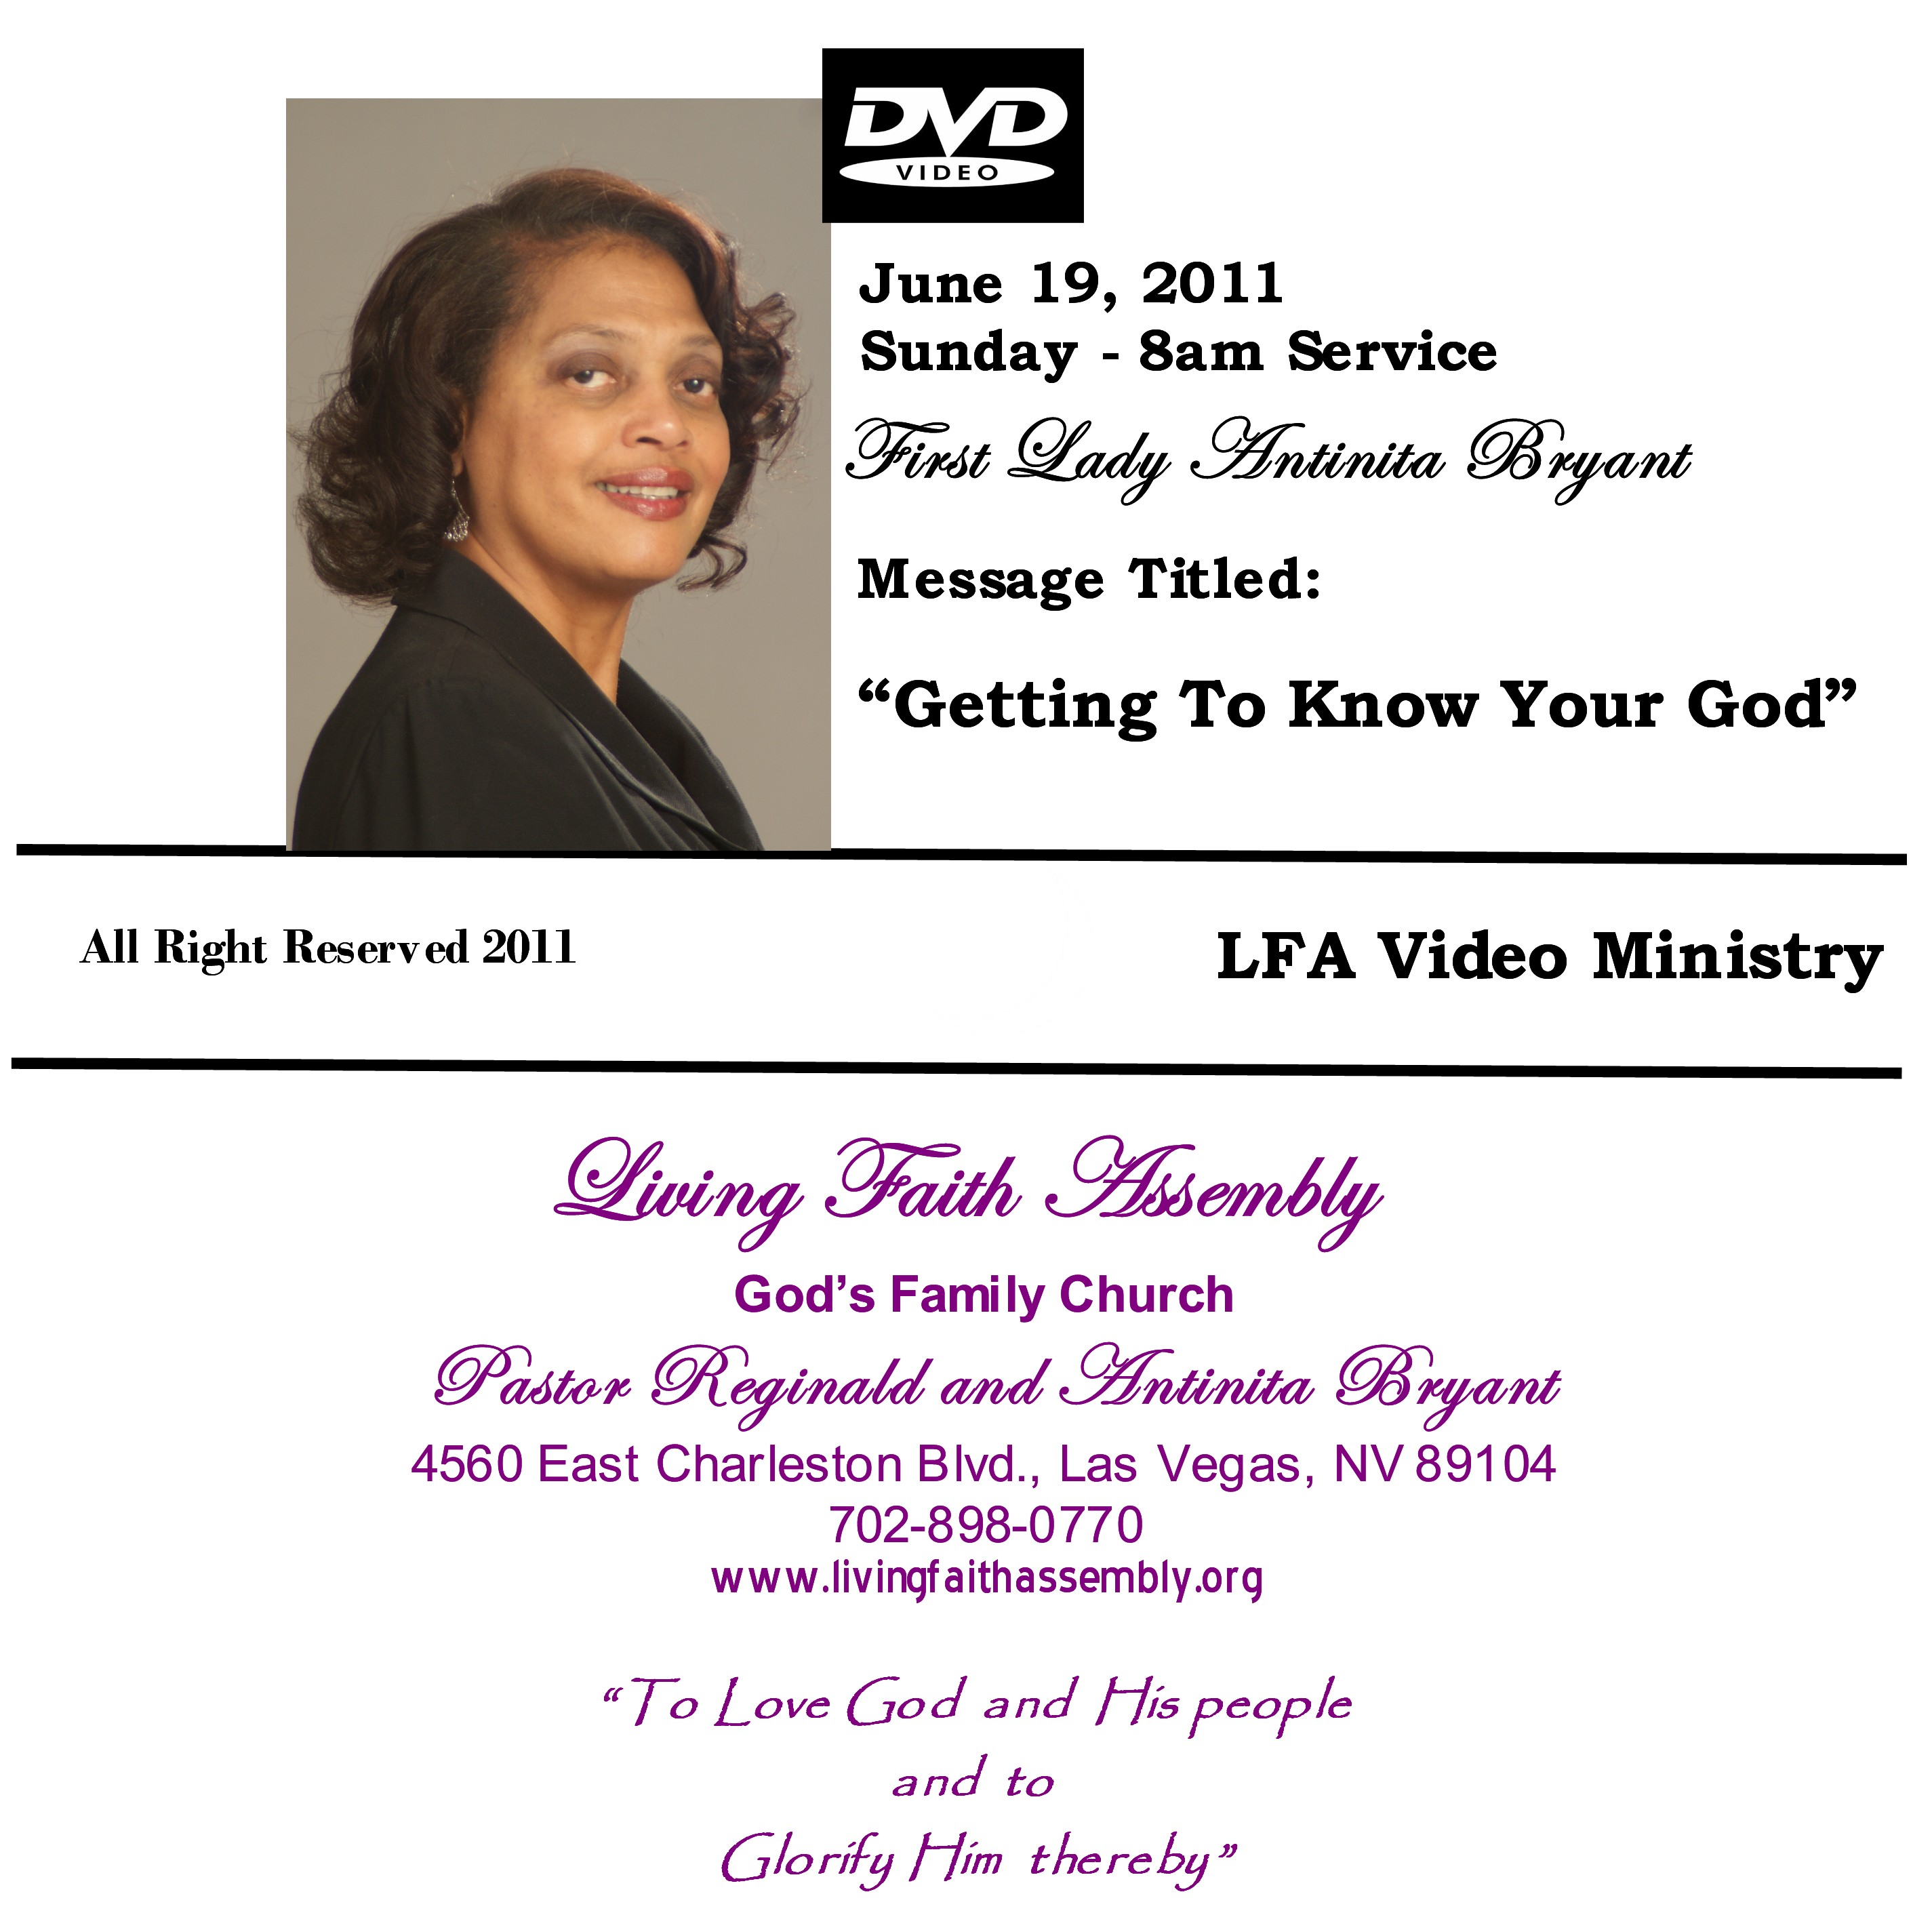 Get To Know God - DVD